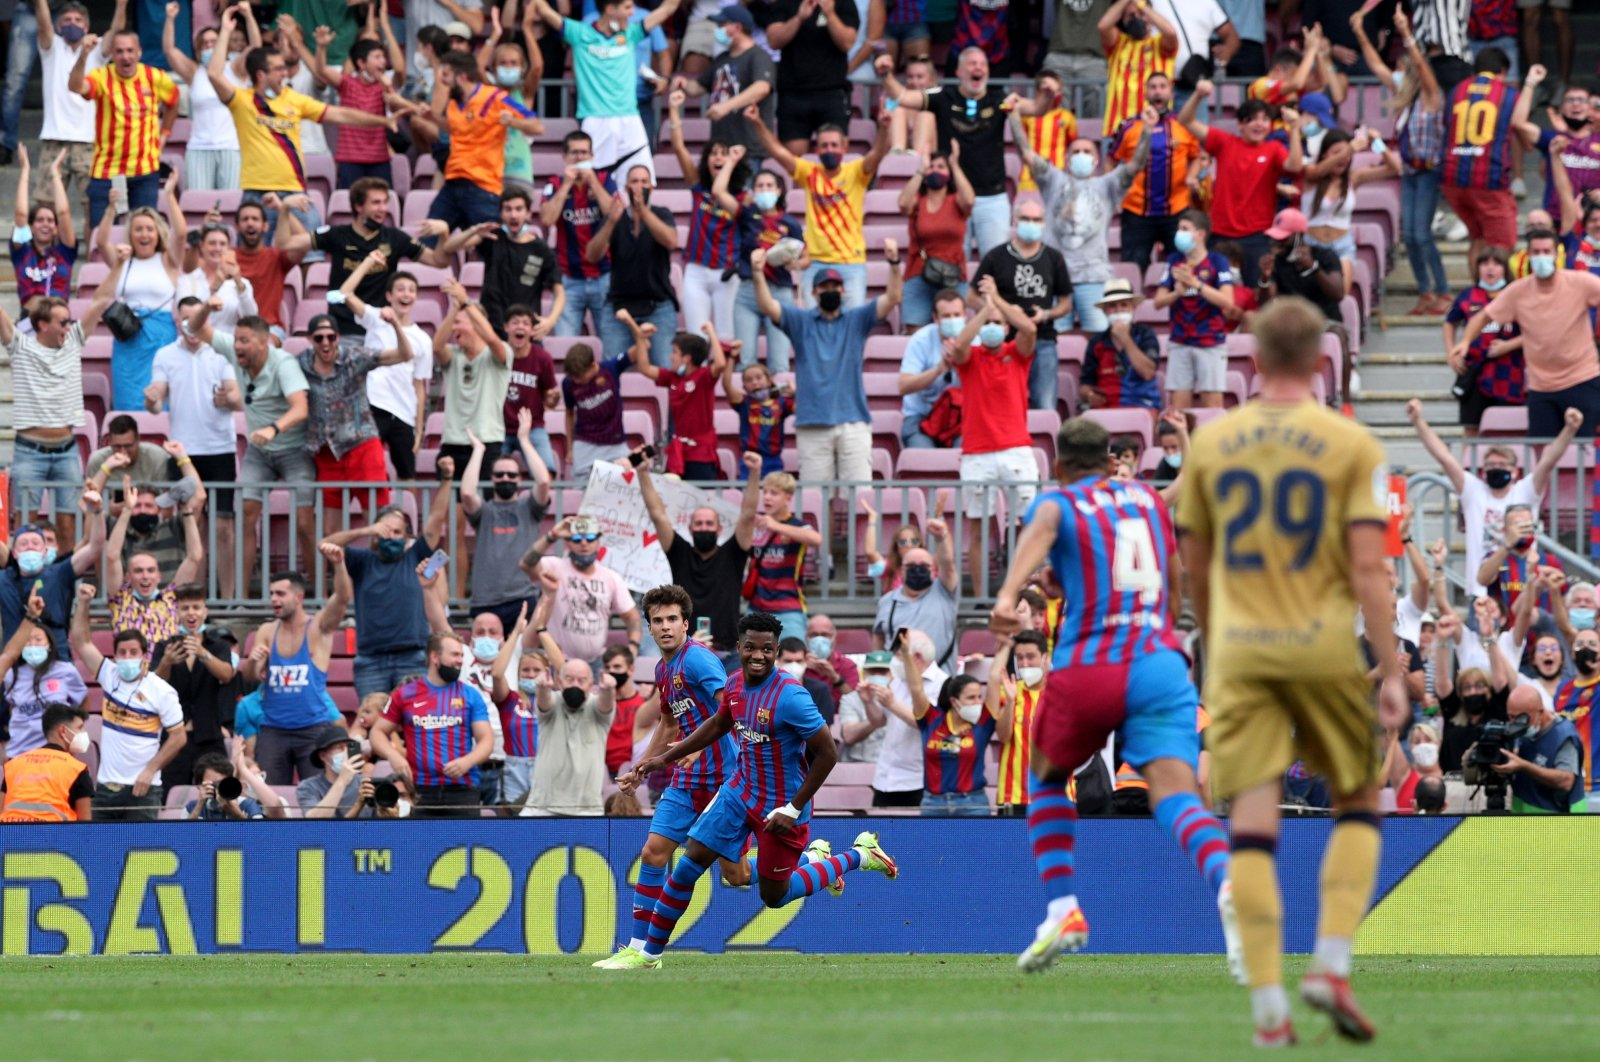 Barcelona's Ansu Fati (L) celebrates scoring their third goal with teammates during a La Liga match at Camp Nou, in Barcelona, Spain, Sept. 26, 2021. (Reuters Photo)